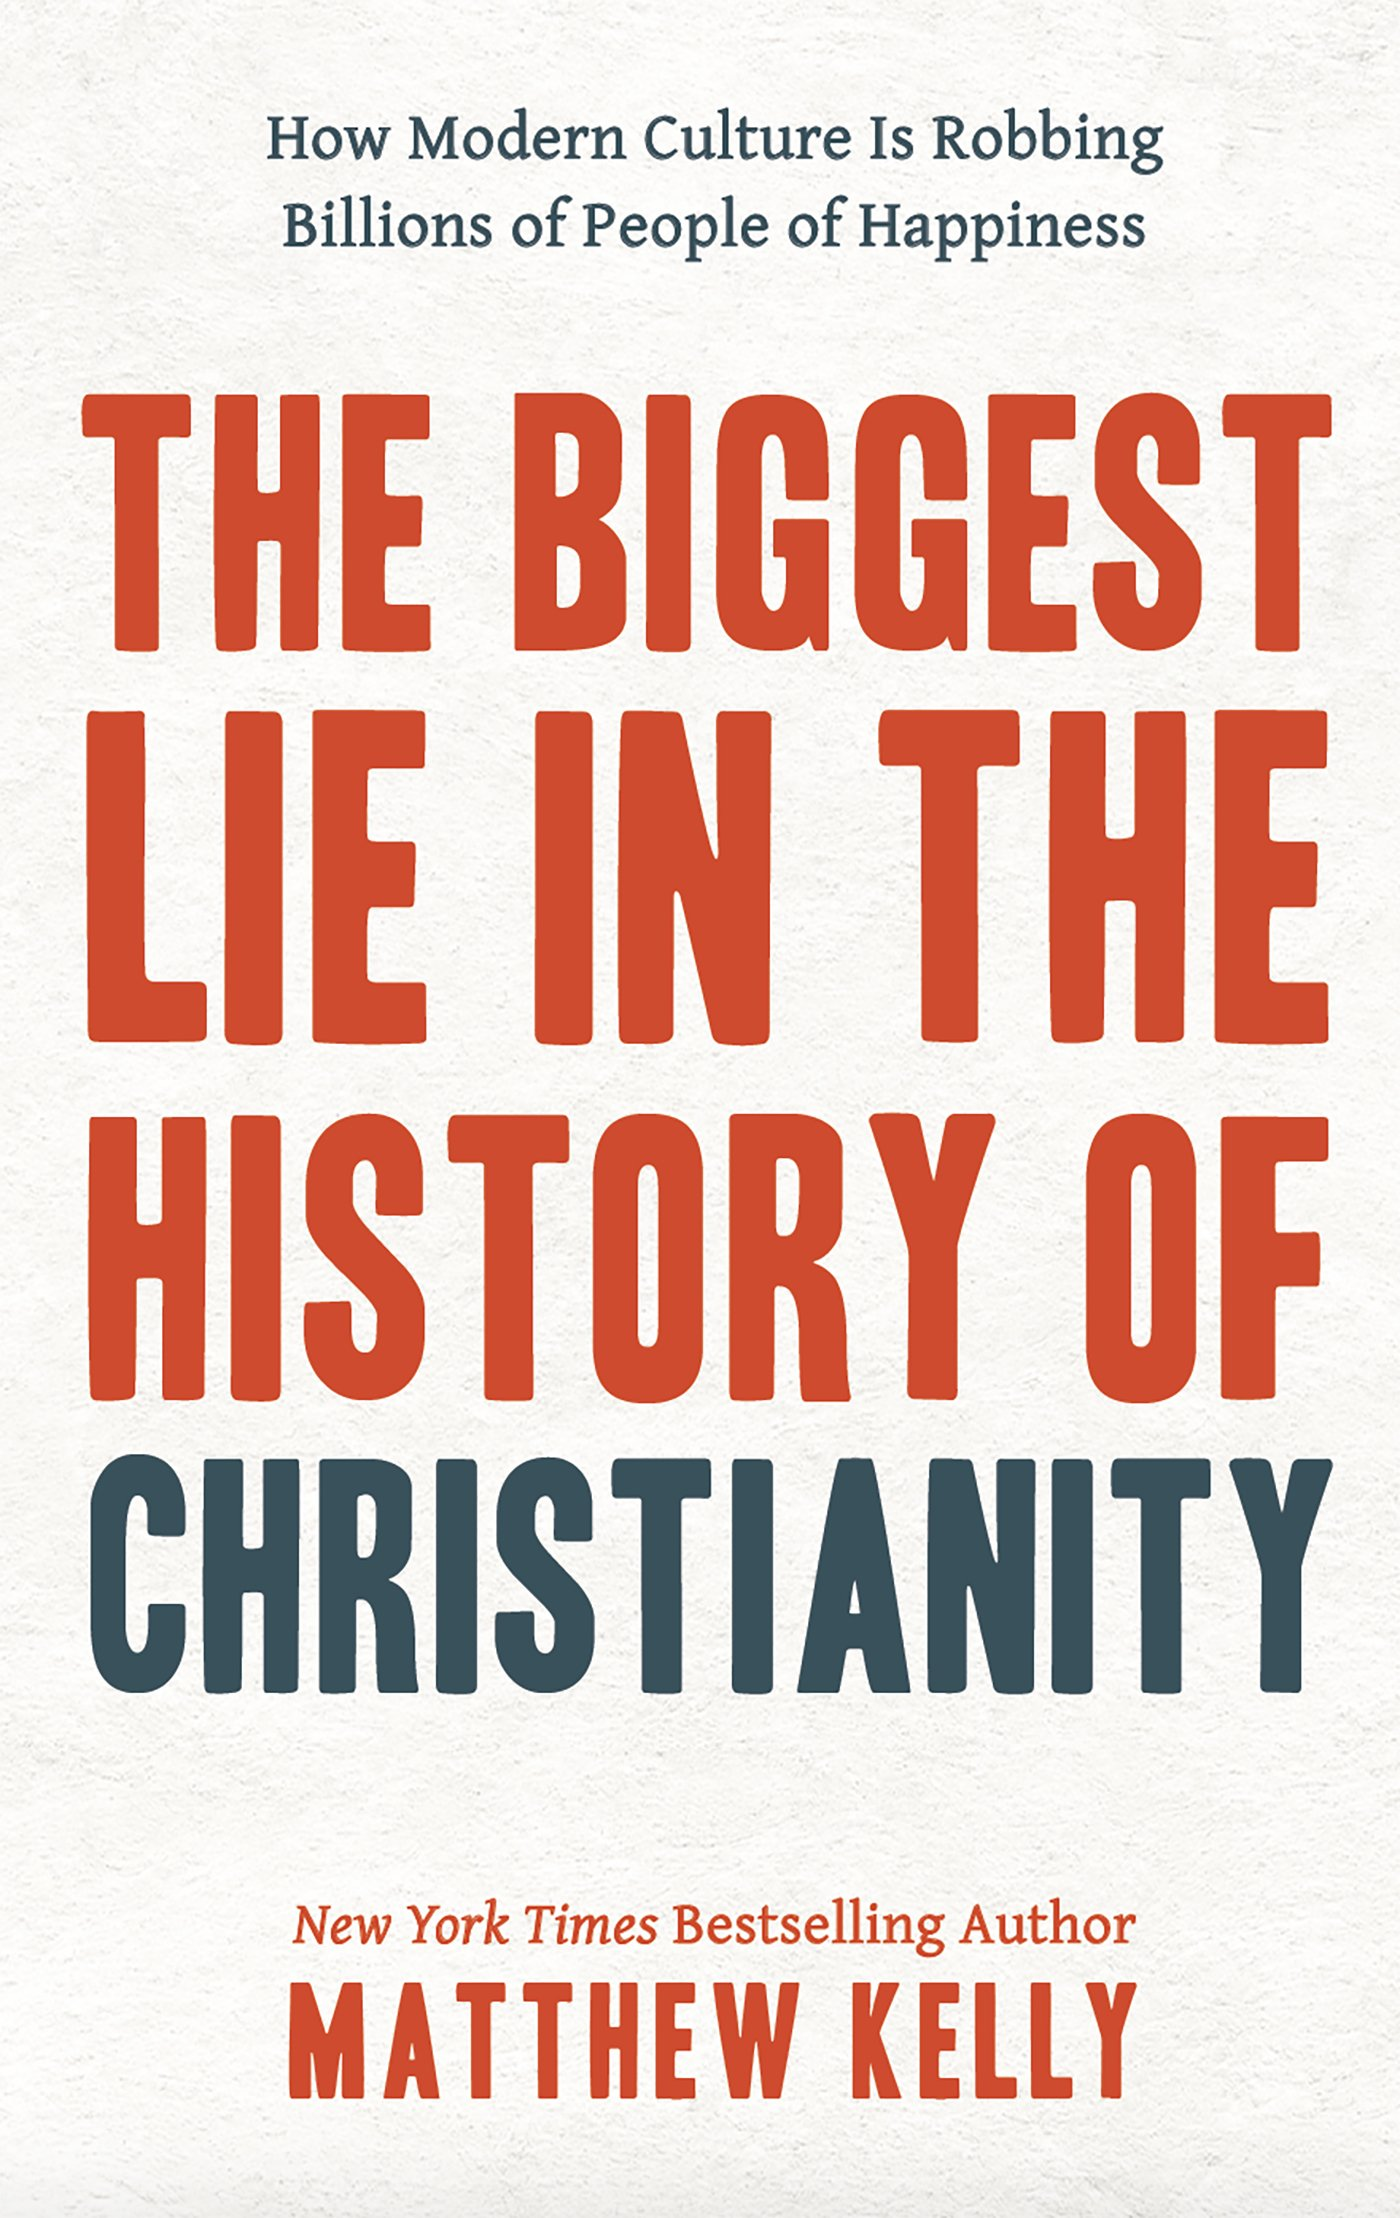 The-Biggest-Lie-in-the-History-of-Christianity-How-Modern-Culture-Is-Robbing-Billions-of-People-of-Happiness